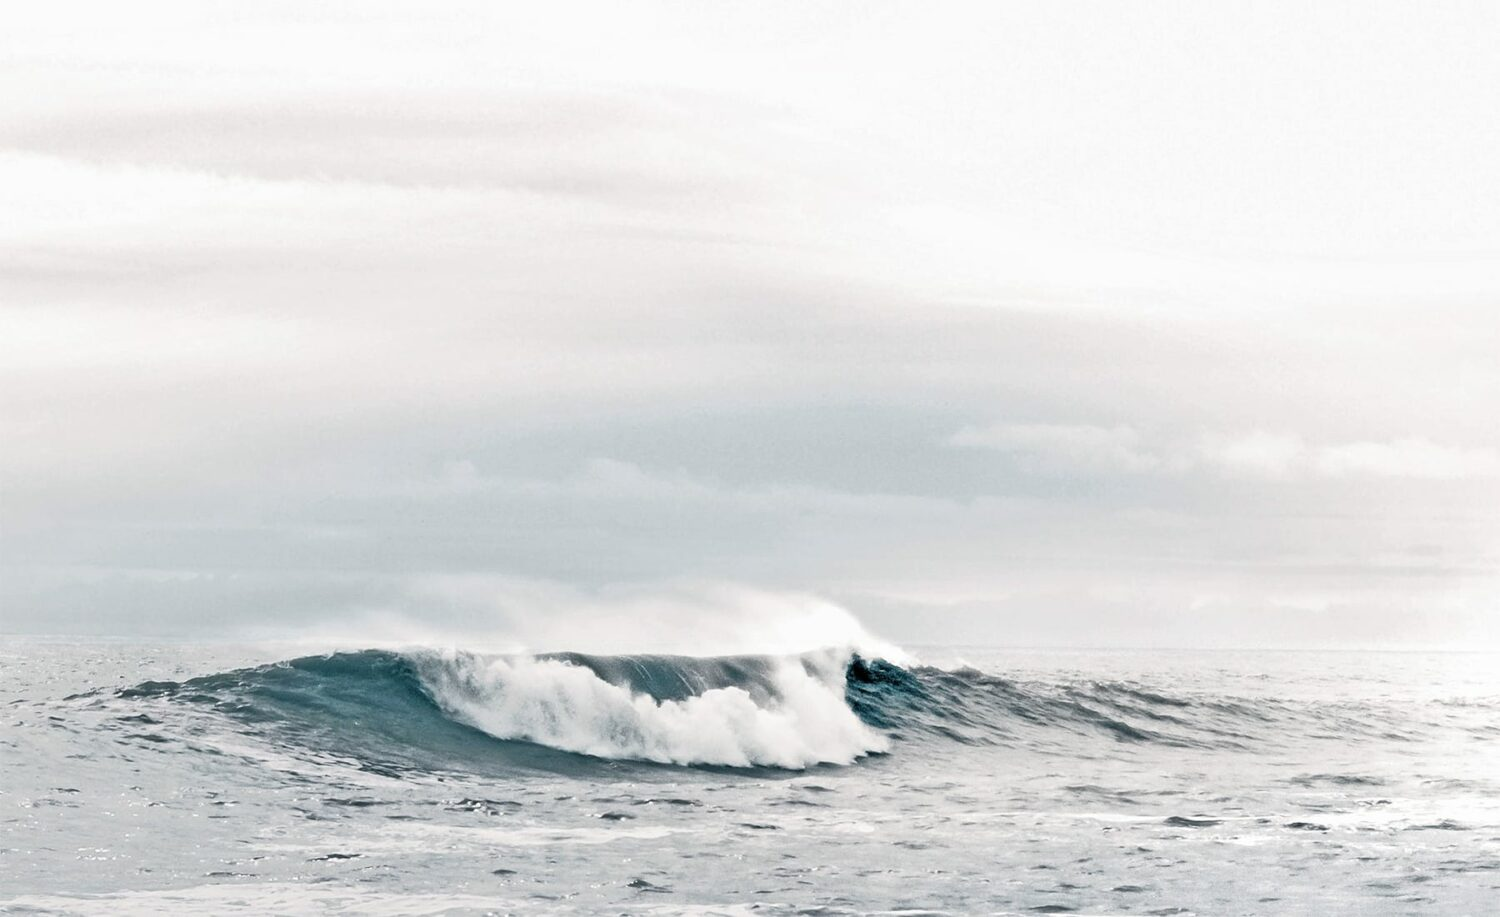 open water with sea wave and grey sky